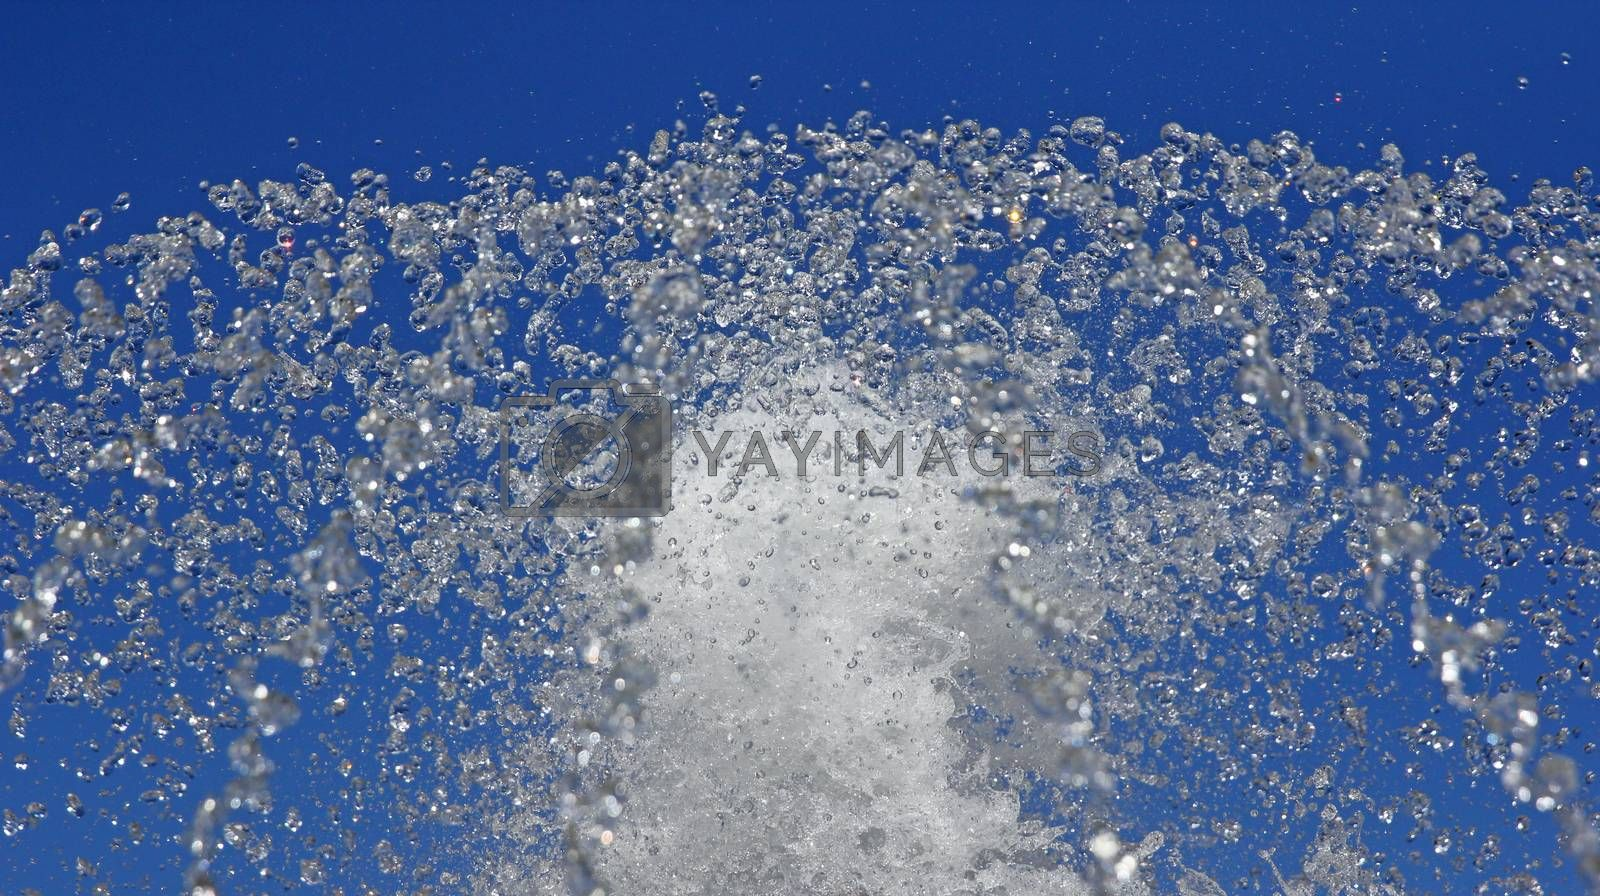 Fountain drops of pure water against a blue sky.